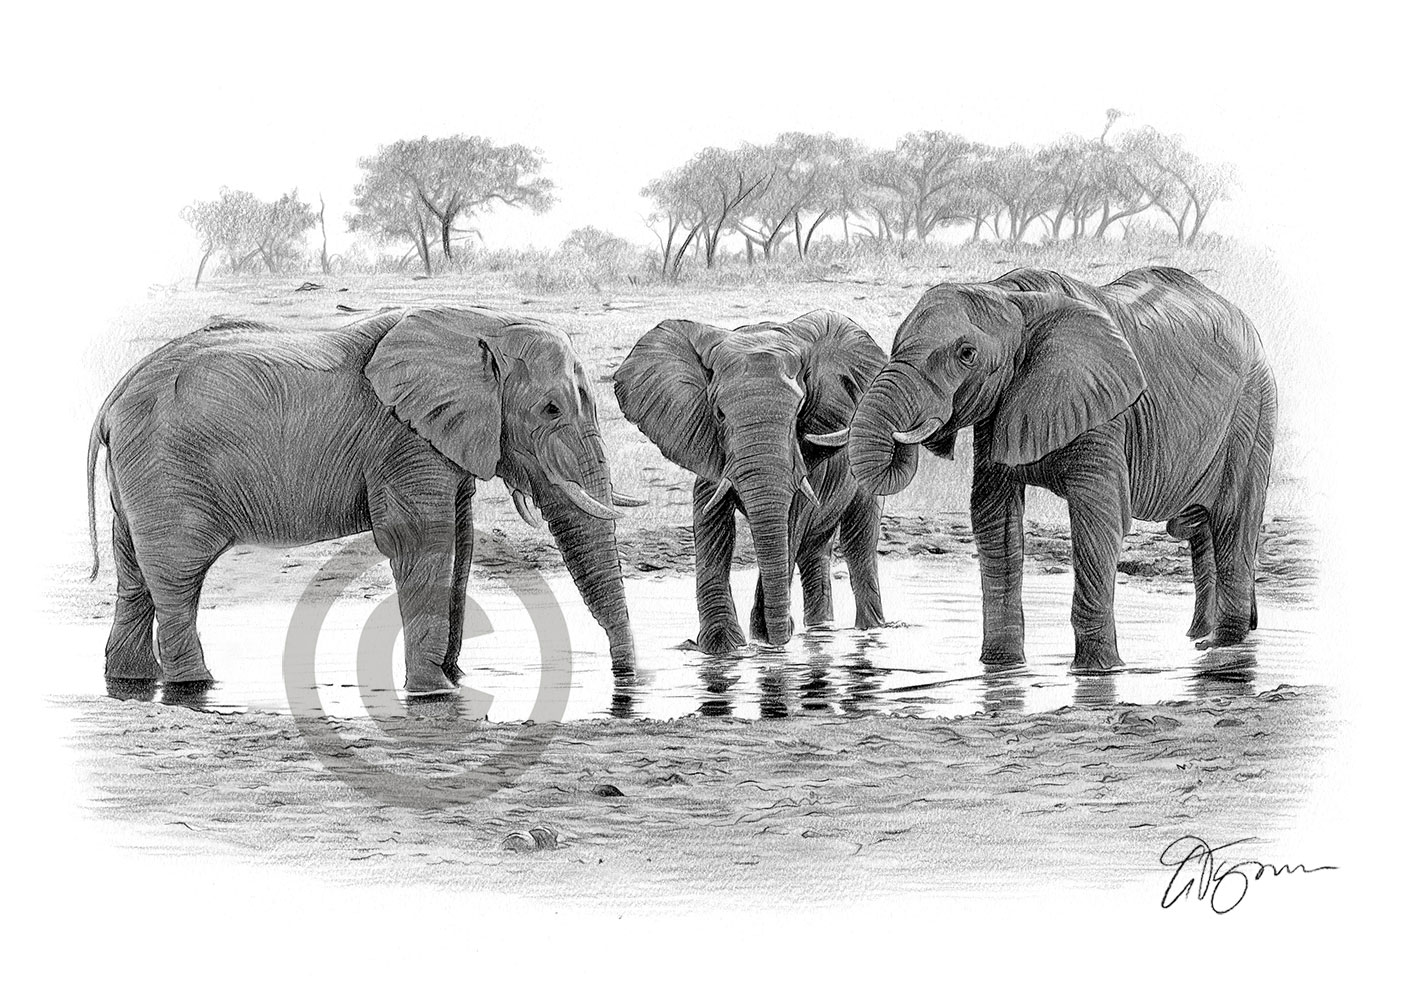 Pencil drawing of a group of elephants at a waterhole by artist Gary Tymon